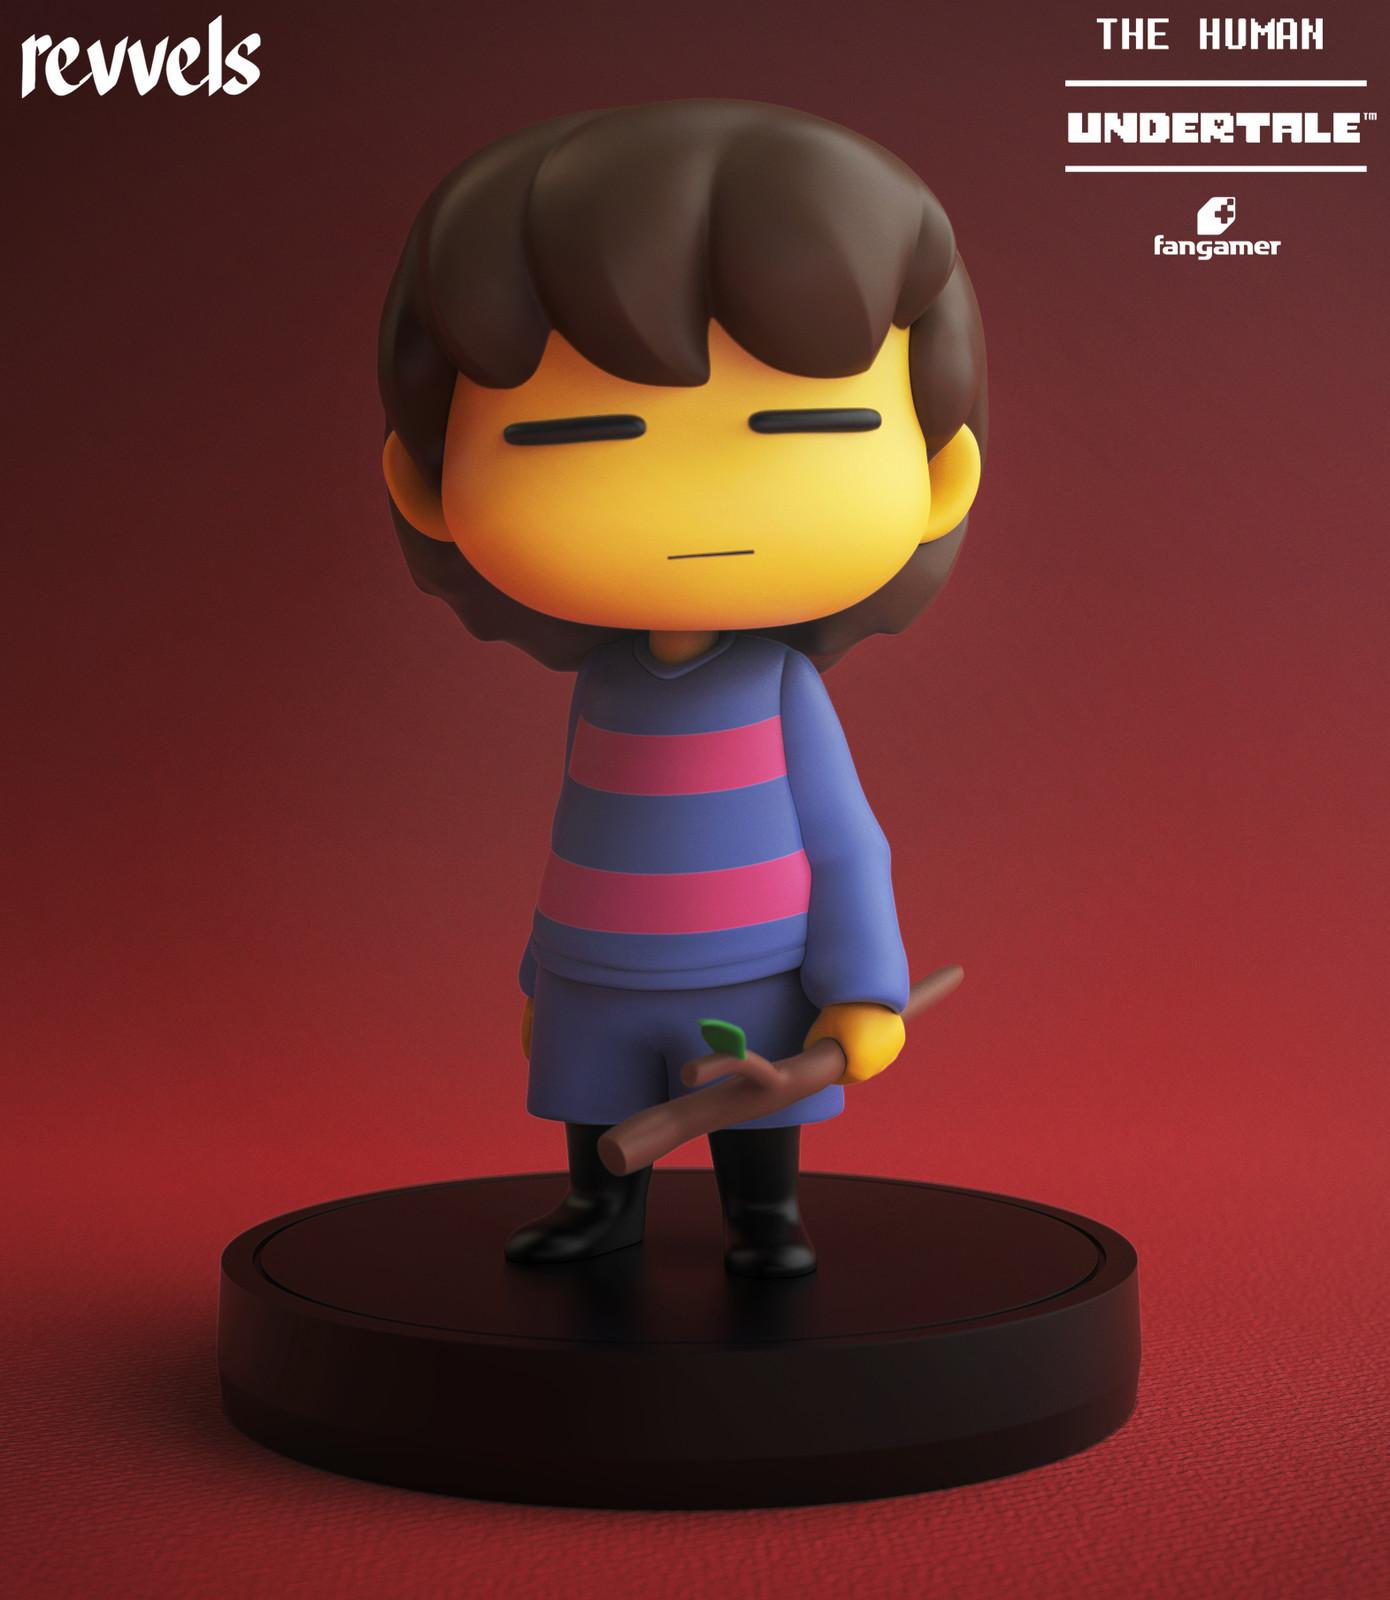 Undertale: The Human